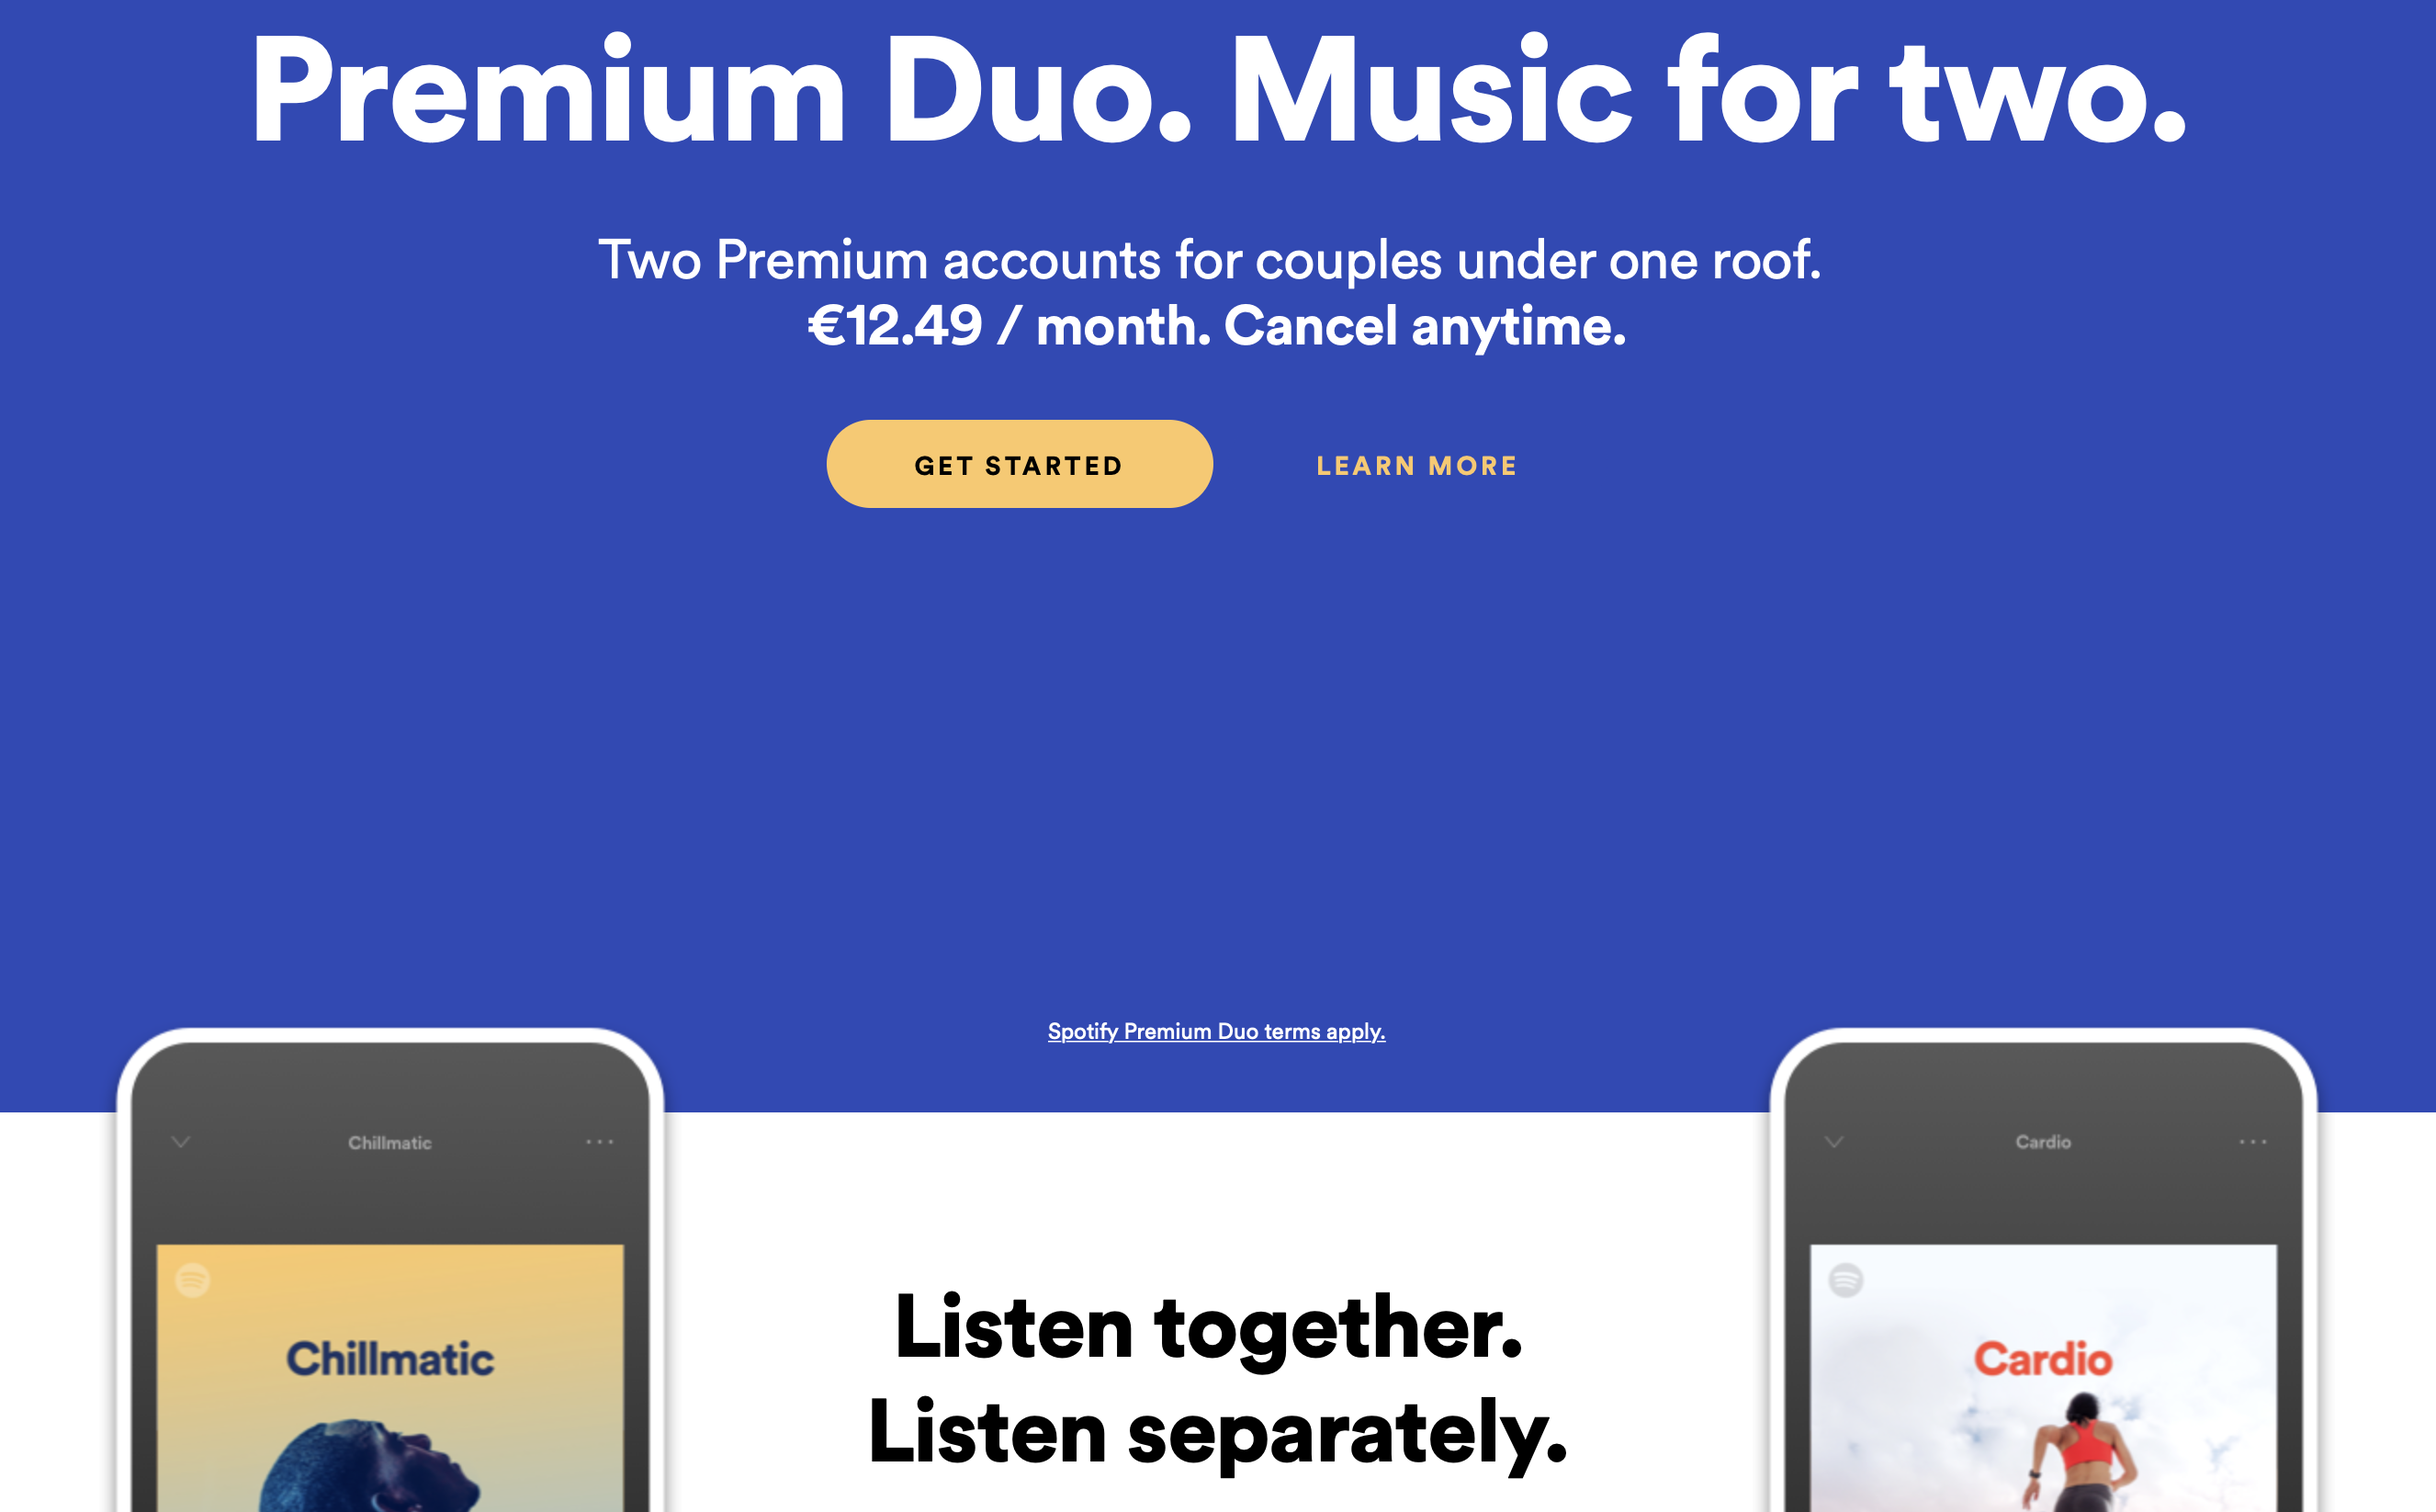 Spotify is testing Premium Duo for €12 49 per month | TechCrunch